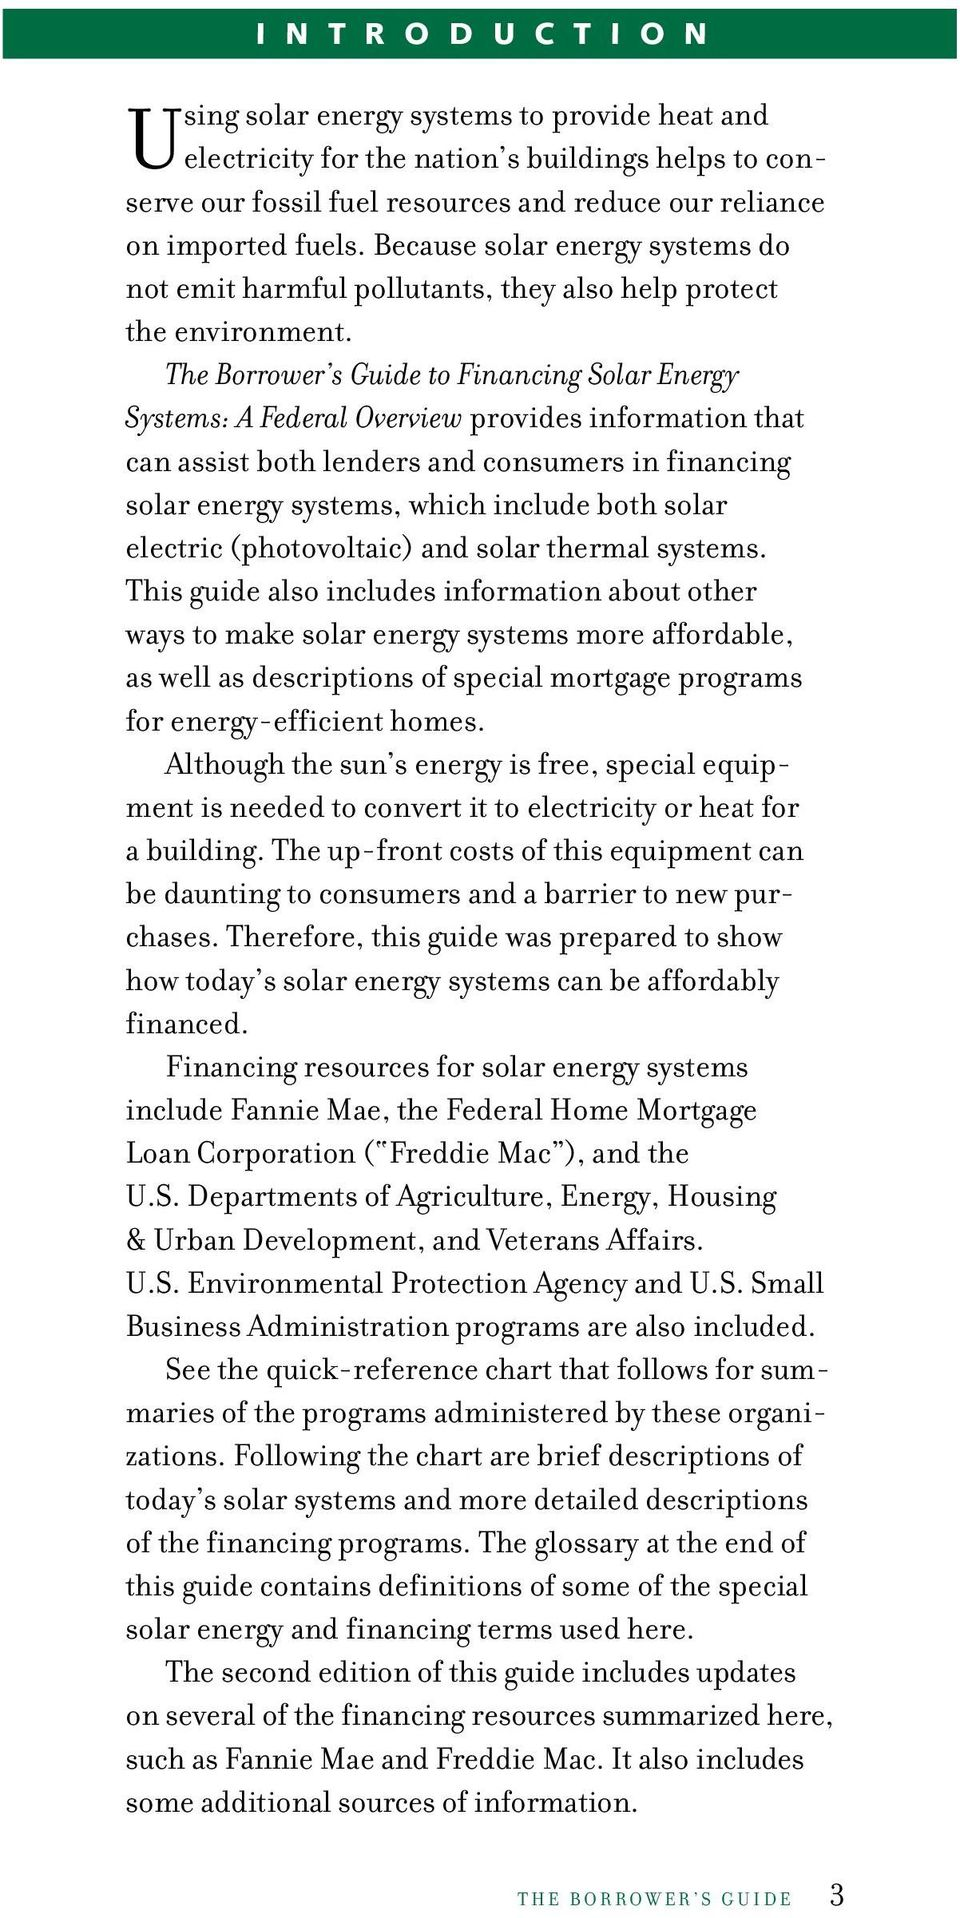 The Borrower s Guide to Financing Solar Energy Systems: A Federal Overview provides information that can assist both lenders and consumers in financing solar energy systems, which include both solar